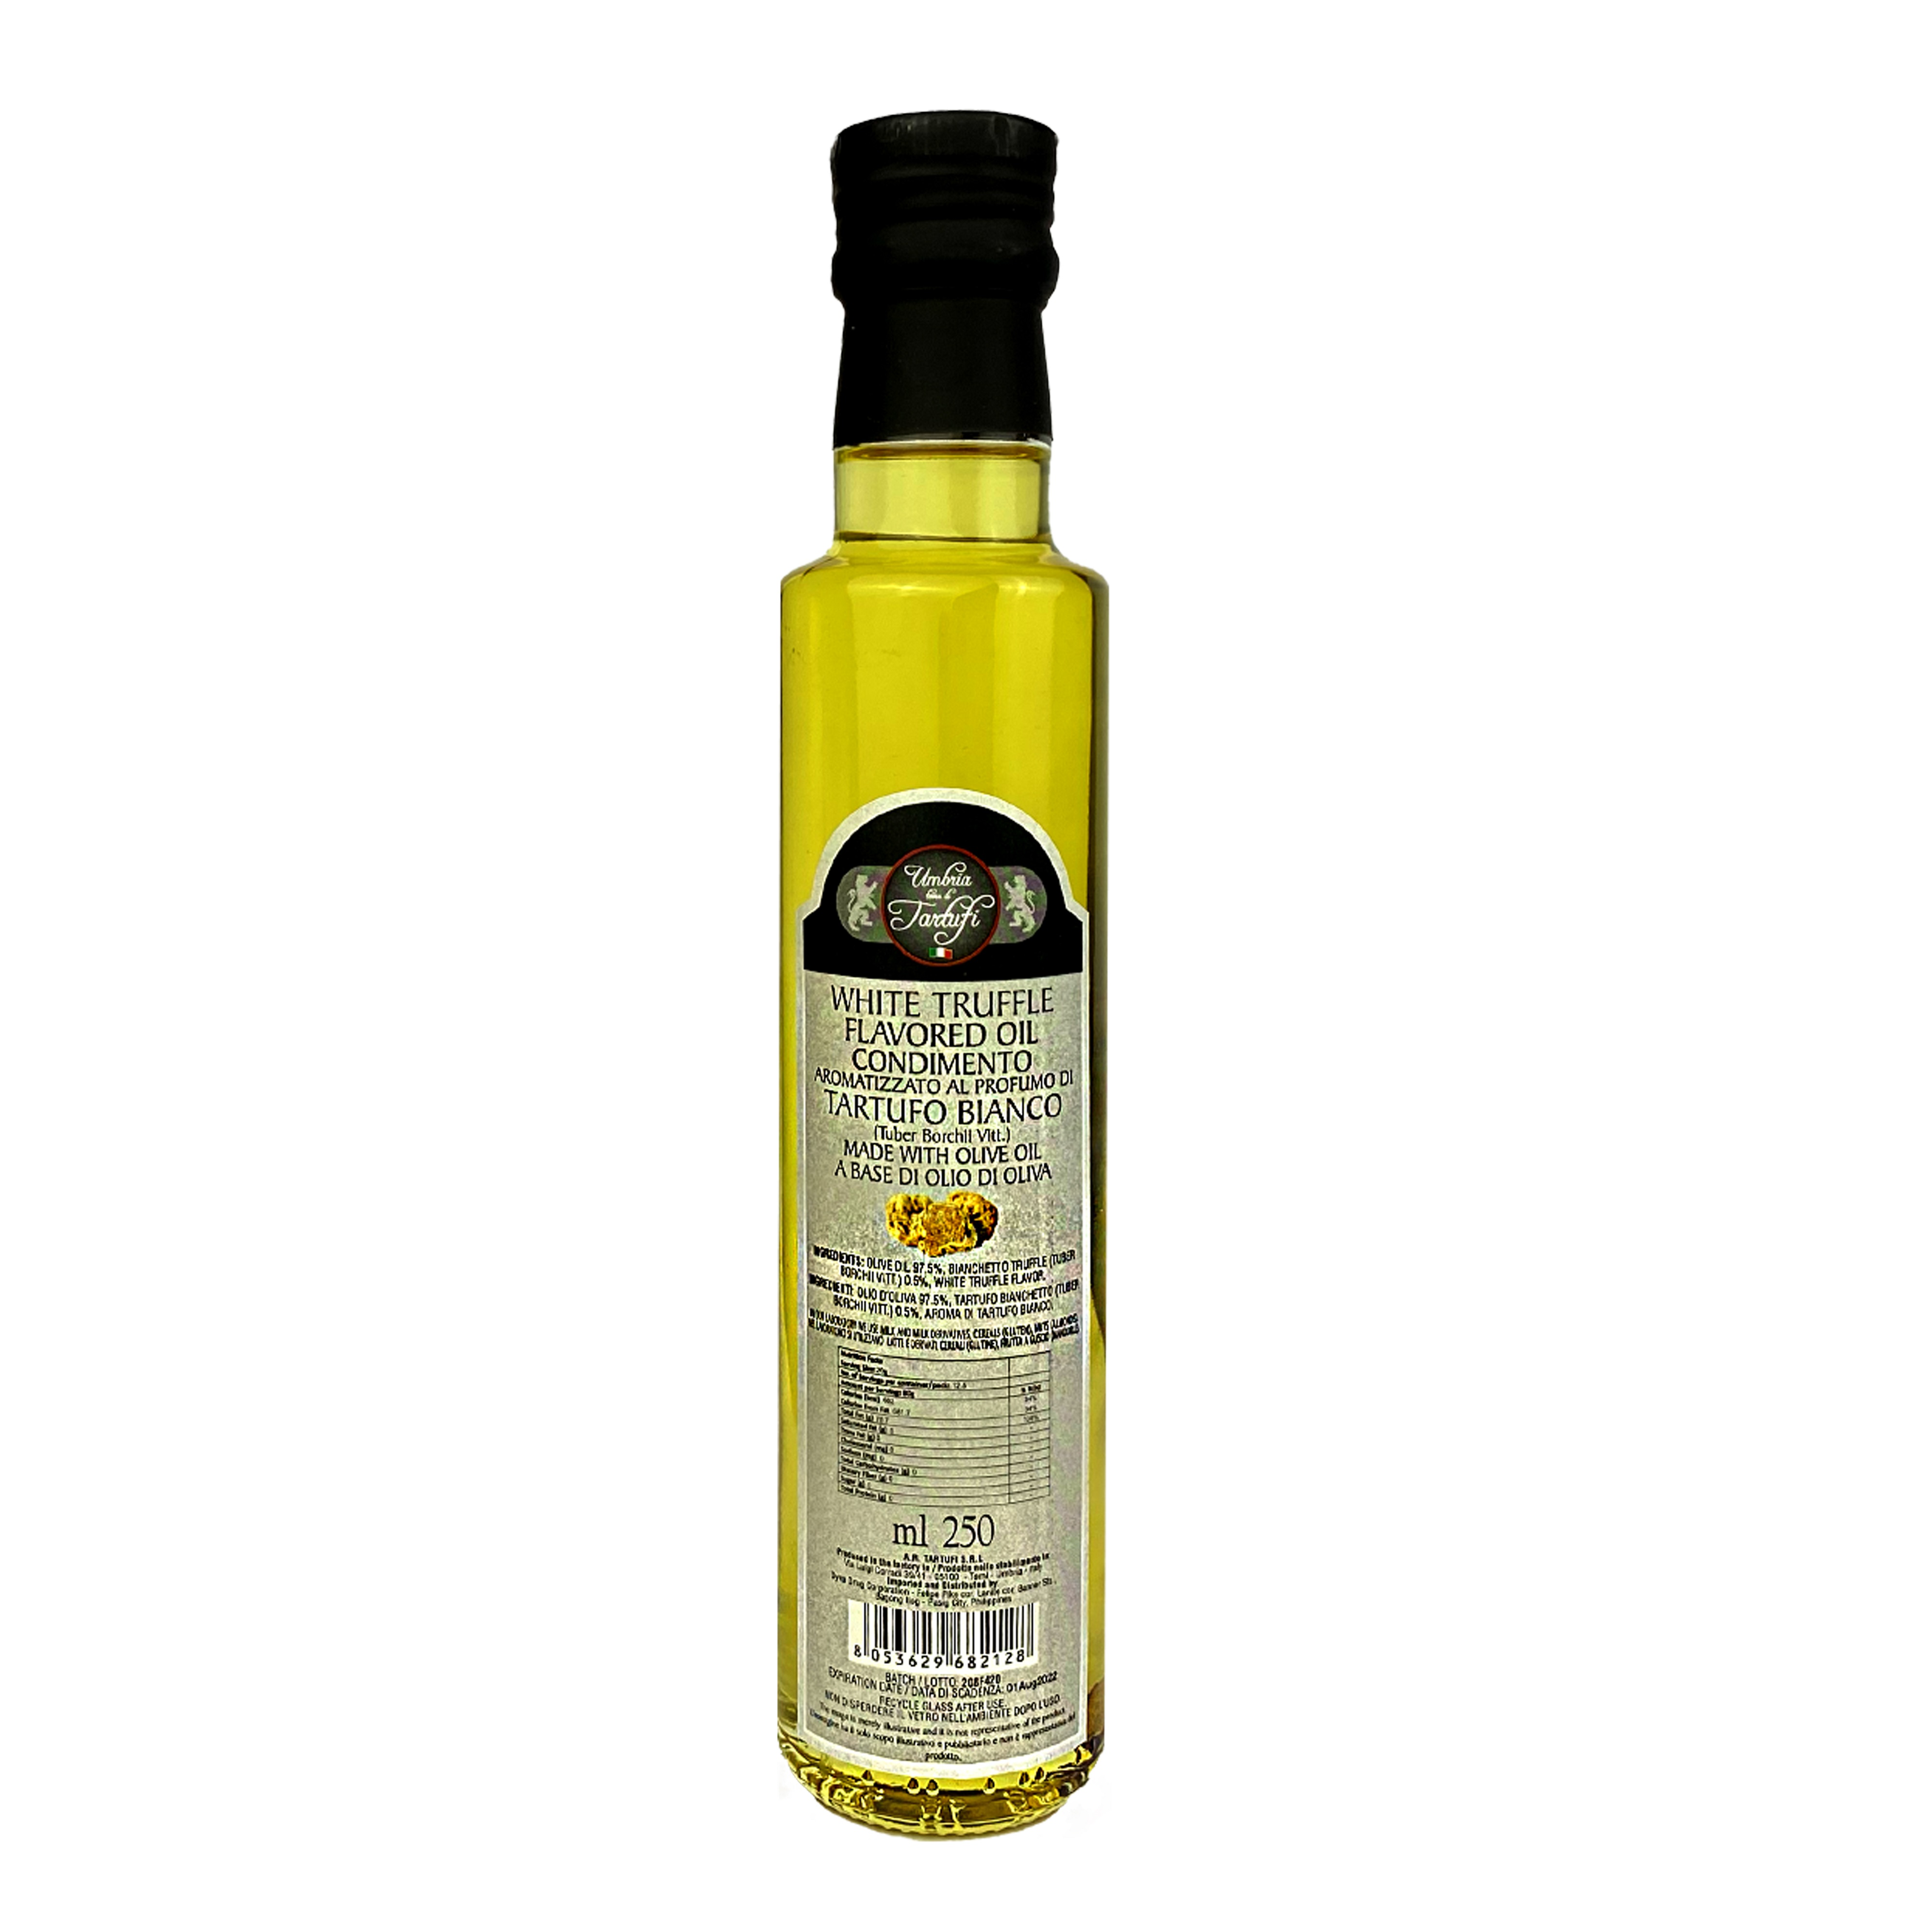 Where to buy Truffle Oil Manila Philippines and Price